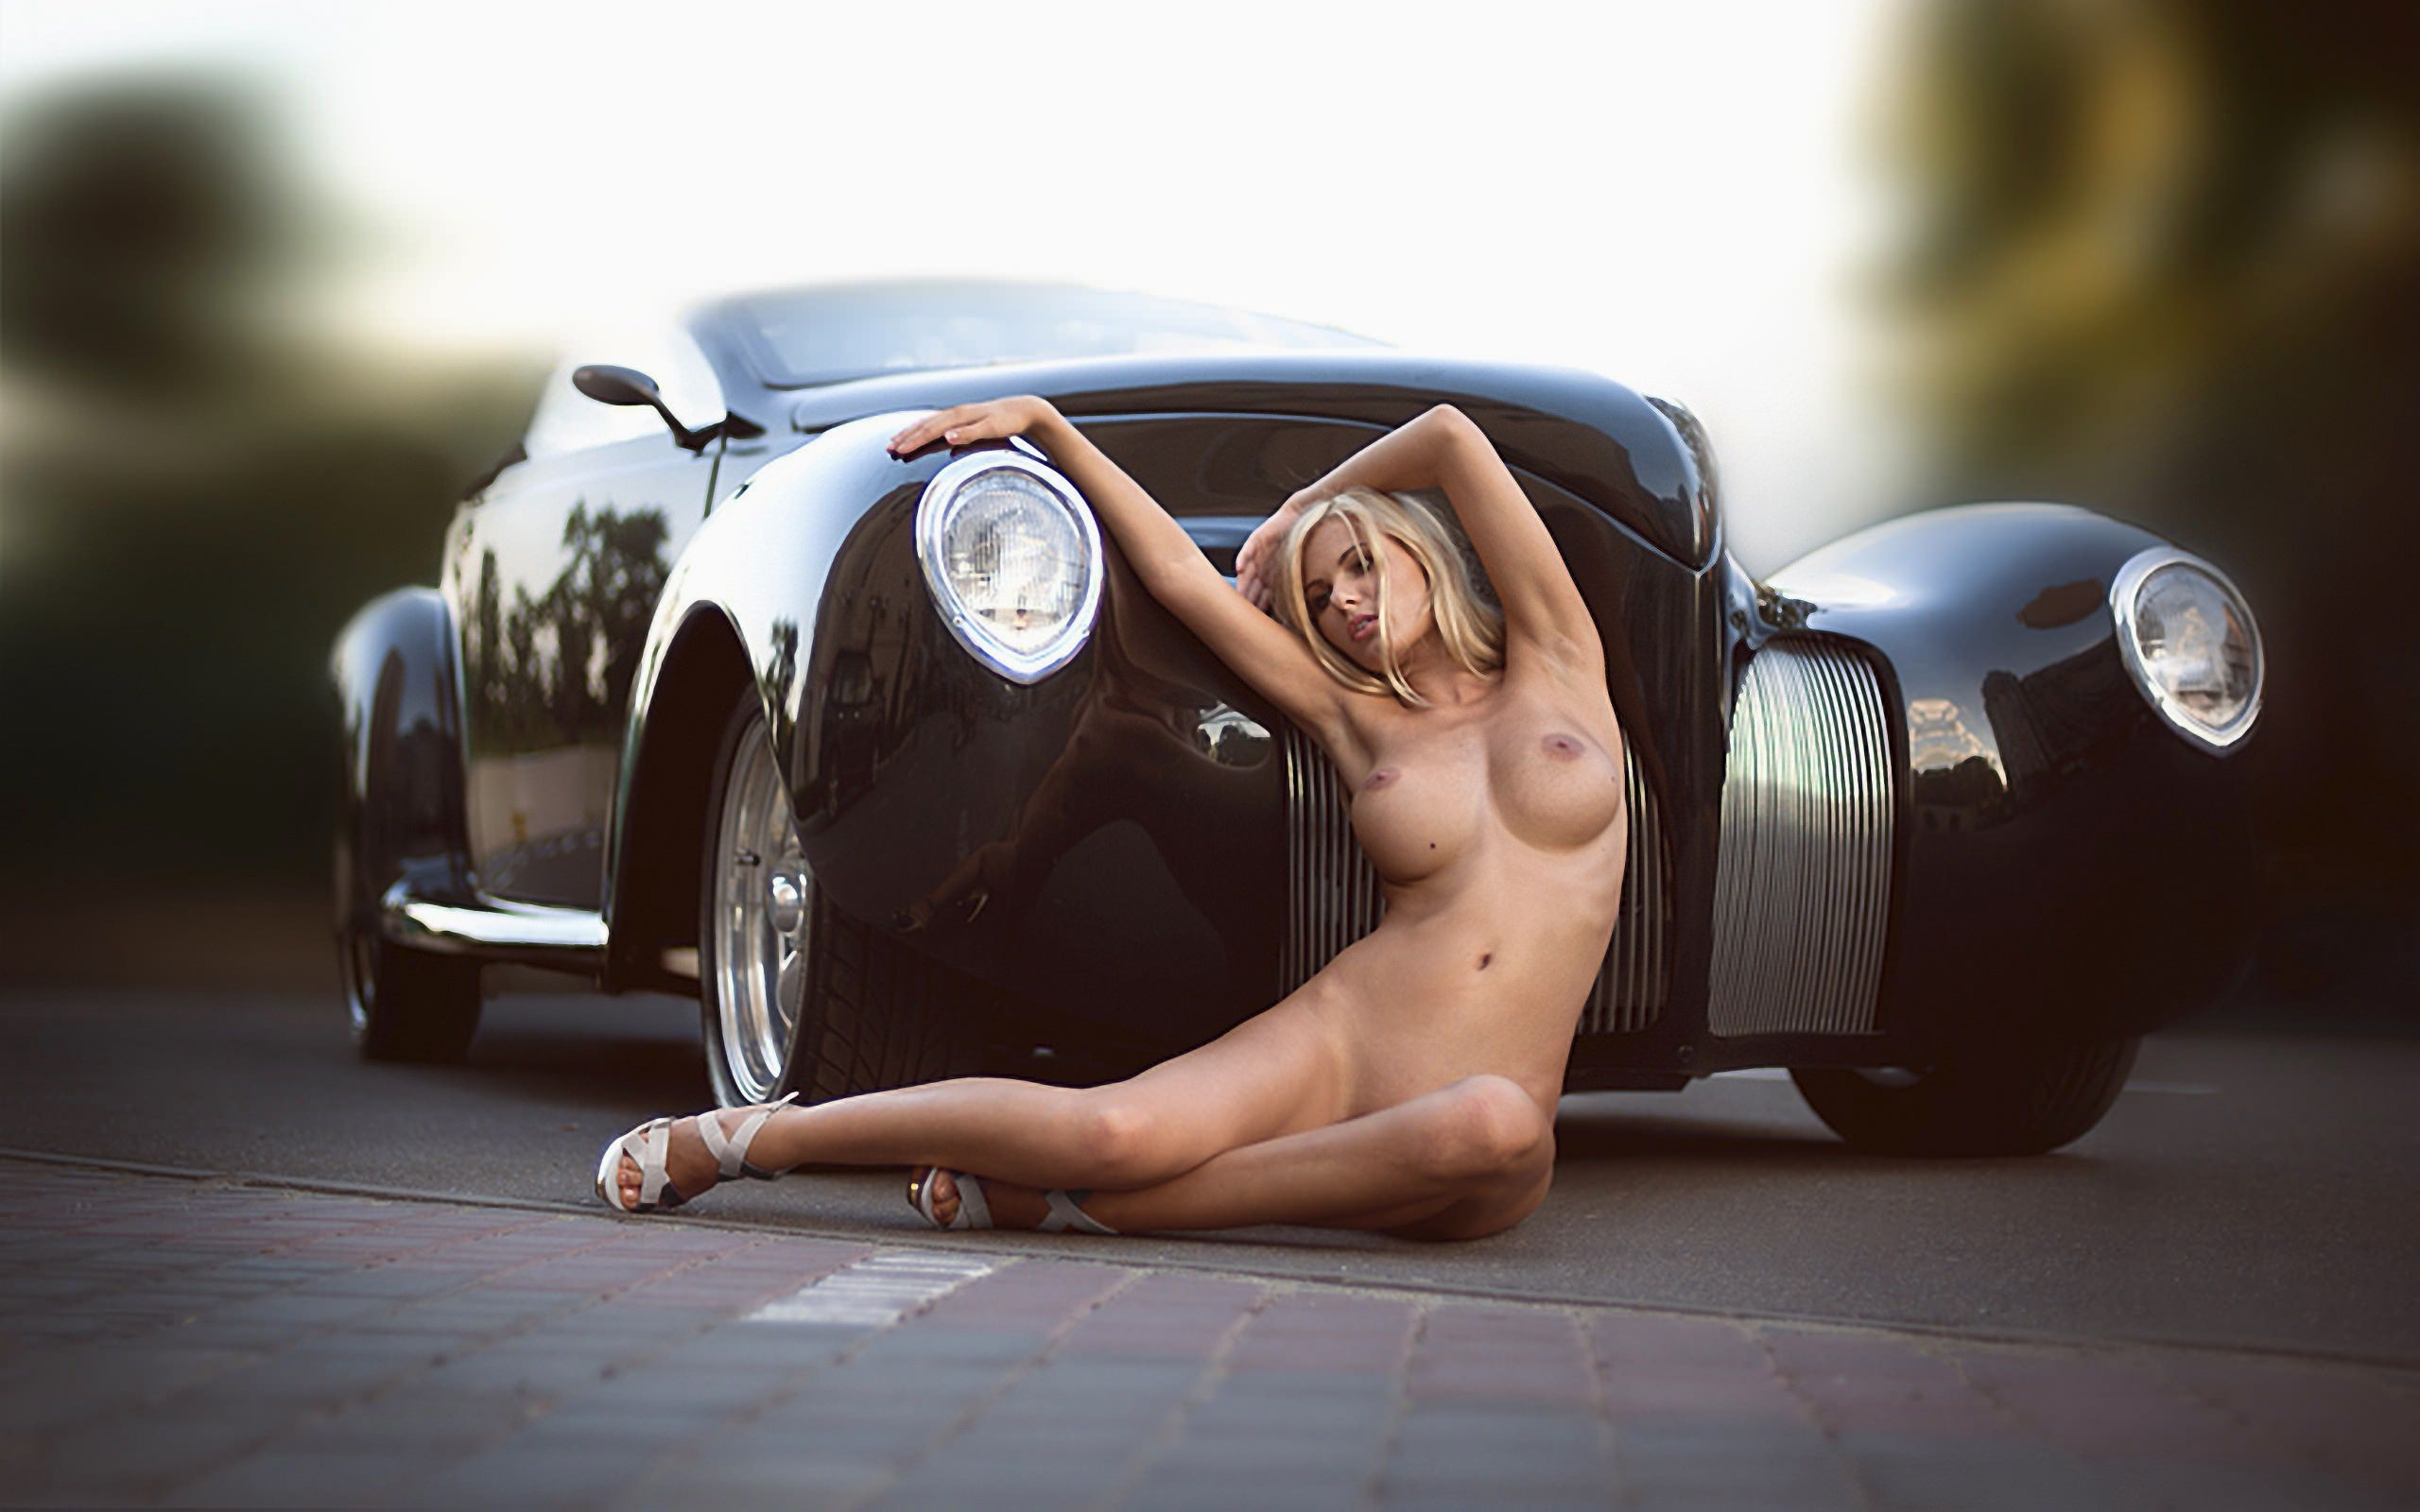 Haulin ass girls in pickup truck bed sexy photo poster print posters